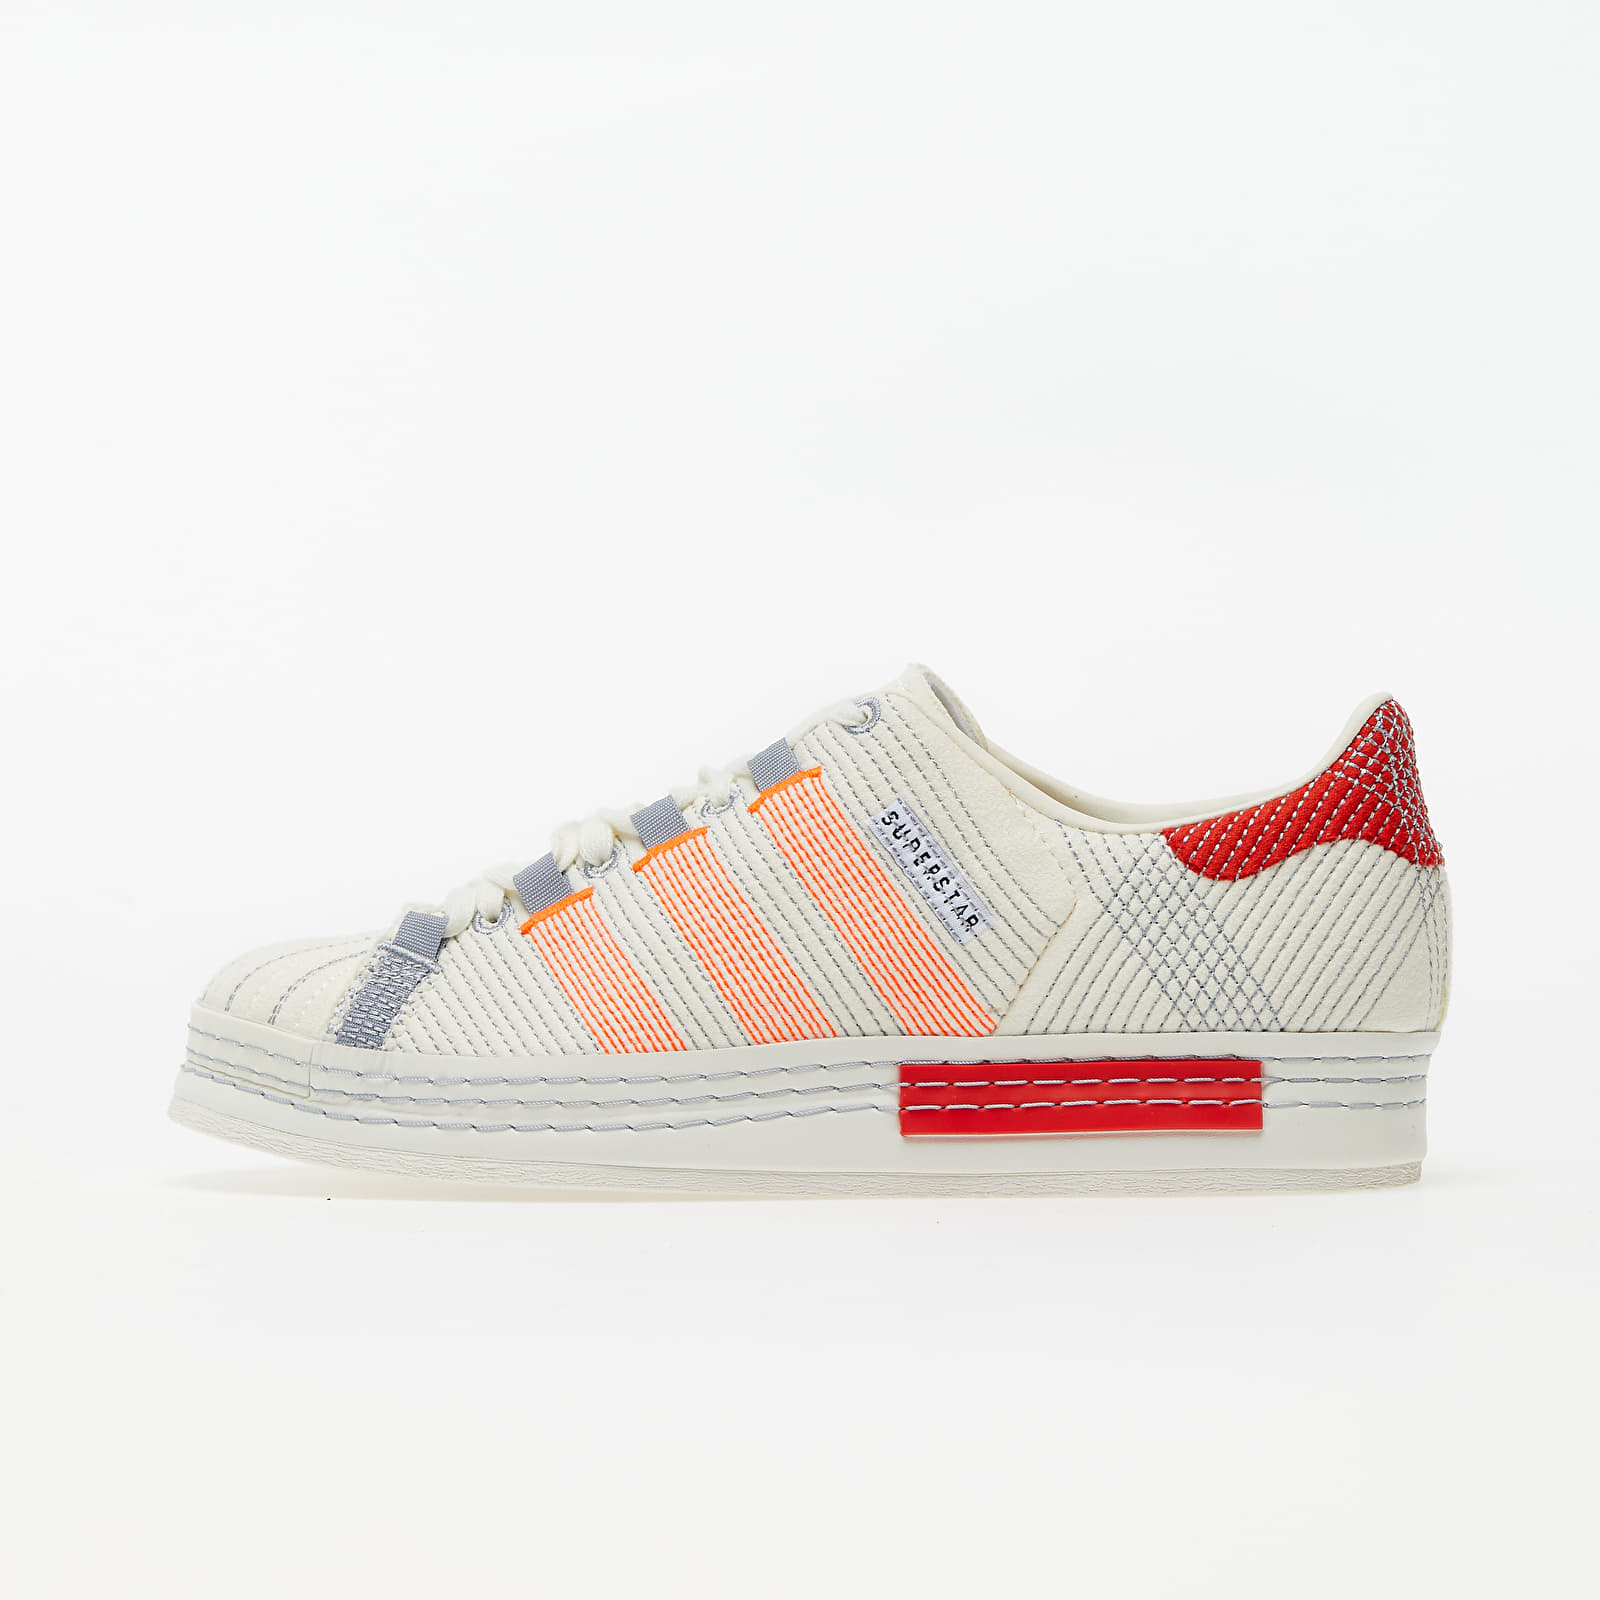 Men's shoes adidas x Craig Green Superstar Off White/ Bright Red/ Grey Three